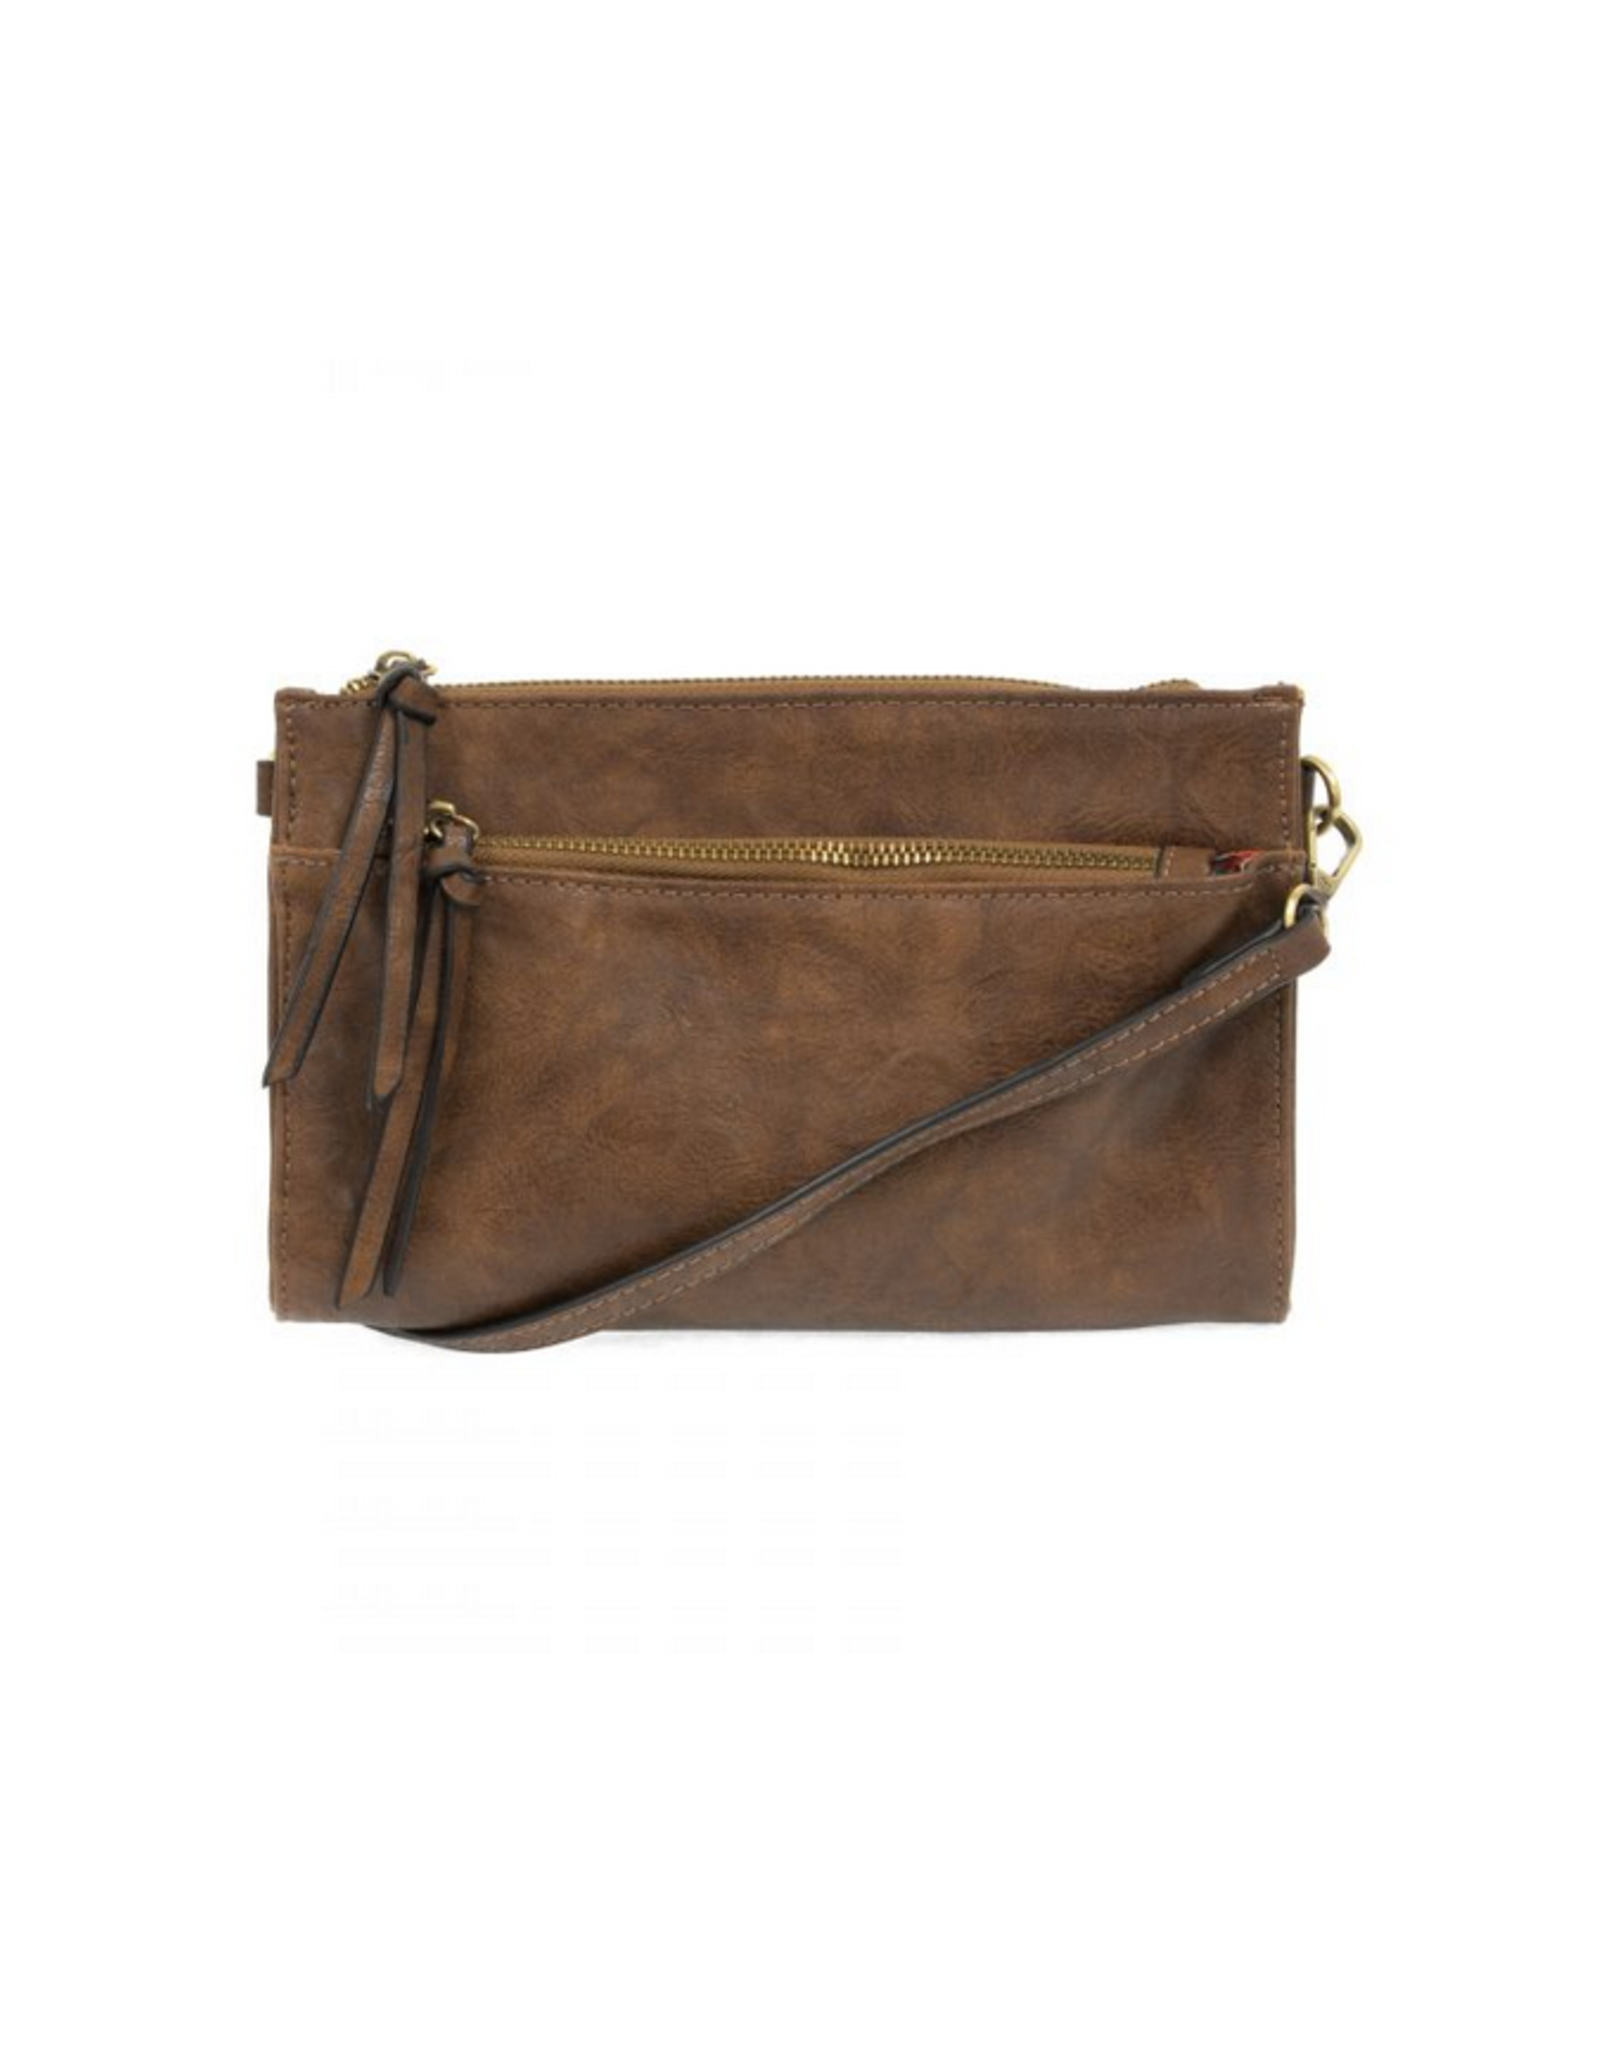 Cece Vintage Crossbody (3 colors!)